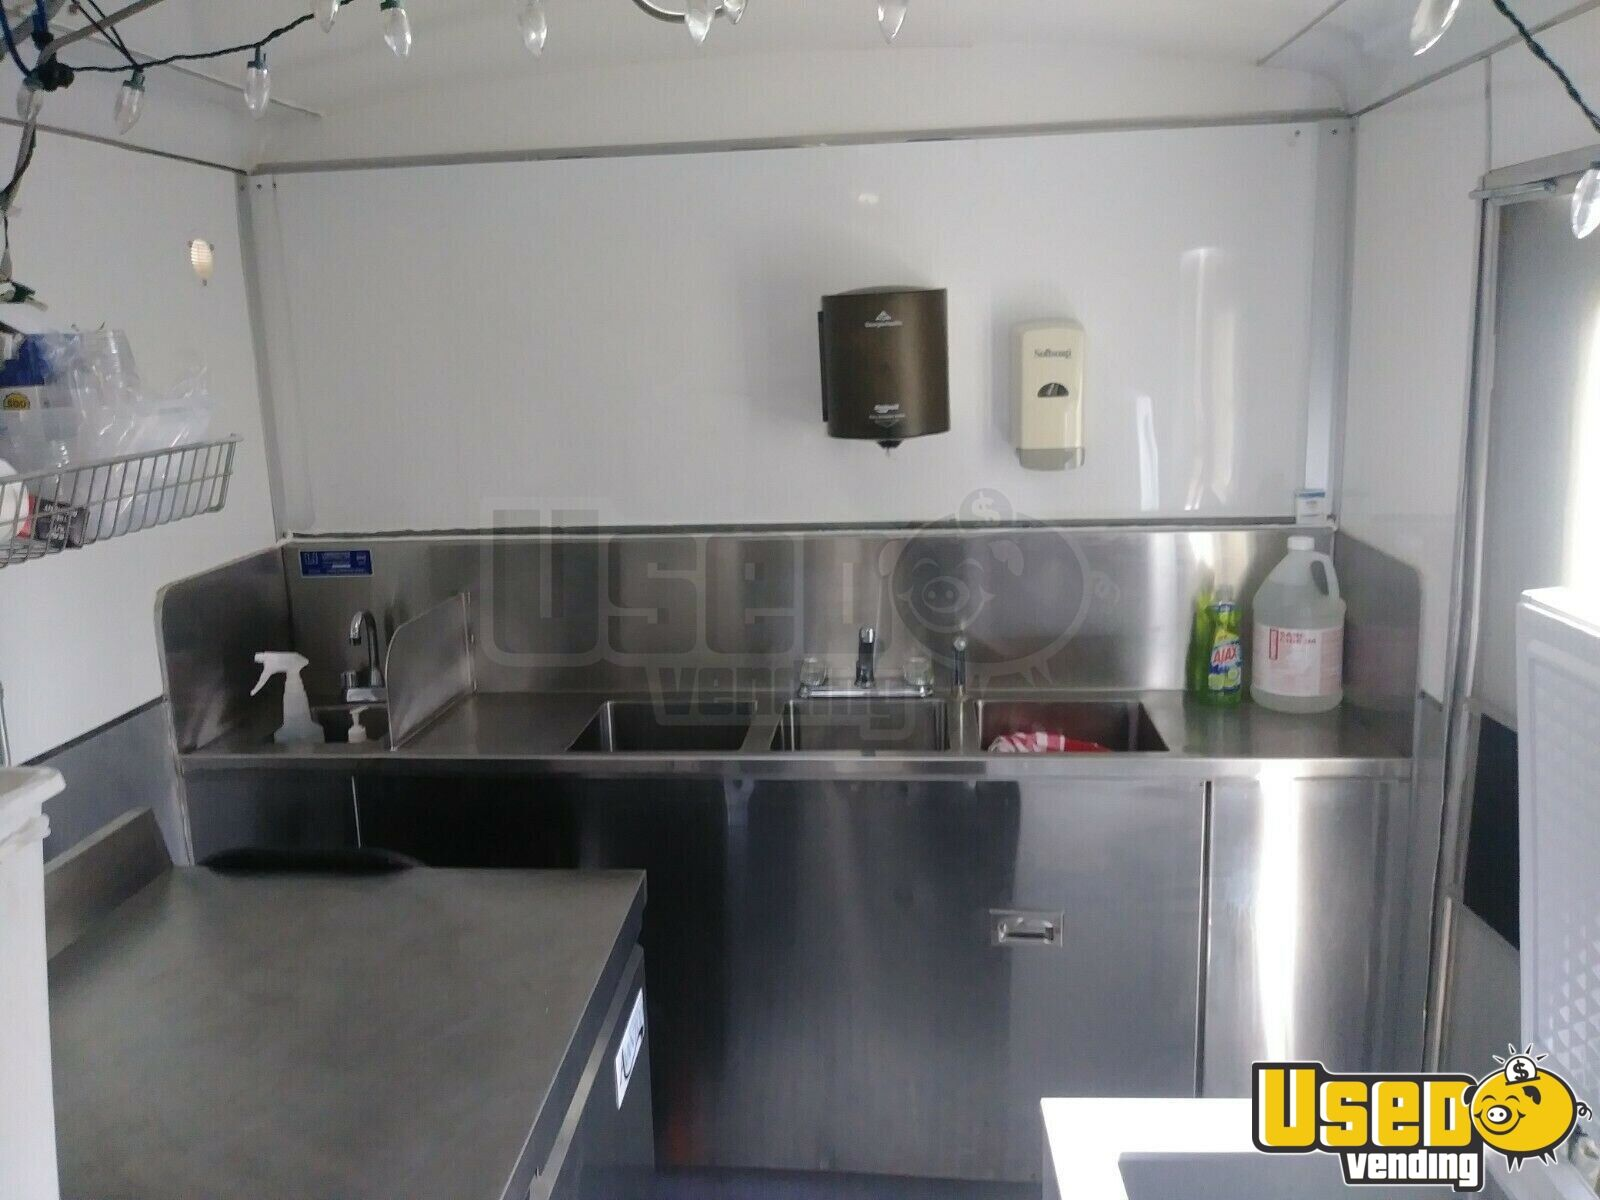 2004 Roadcoach All-purpose Food Trailer Ice Block Maker California for Sale - 11